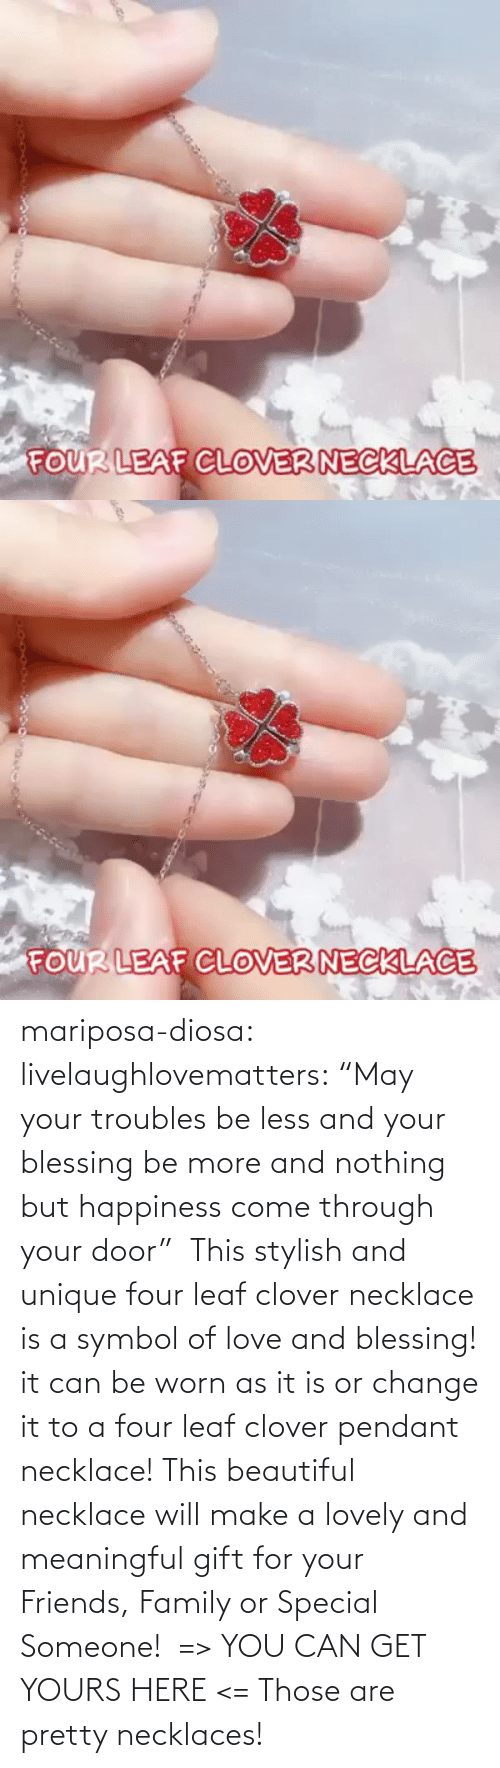 "Come Through: mariposa-diosa: livelaughlovematters:  ""May your troubles be less and your blessing be more and nothing but happiness come through your door""  This stylish and unique four leaf clover necklace is a symbol of love and blessing! it can be worn as it is or change it to a four leaf clover pendant necklace! This beautiful necklace will make a lovely and meaningful gift for your Friends, Family or Special Someone!  => YOU CAN GET YOURS HERE <=    Those are pretty necklaces!"